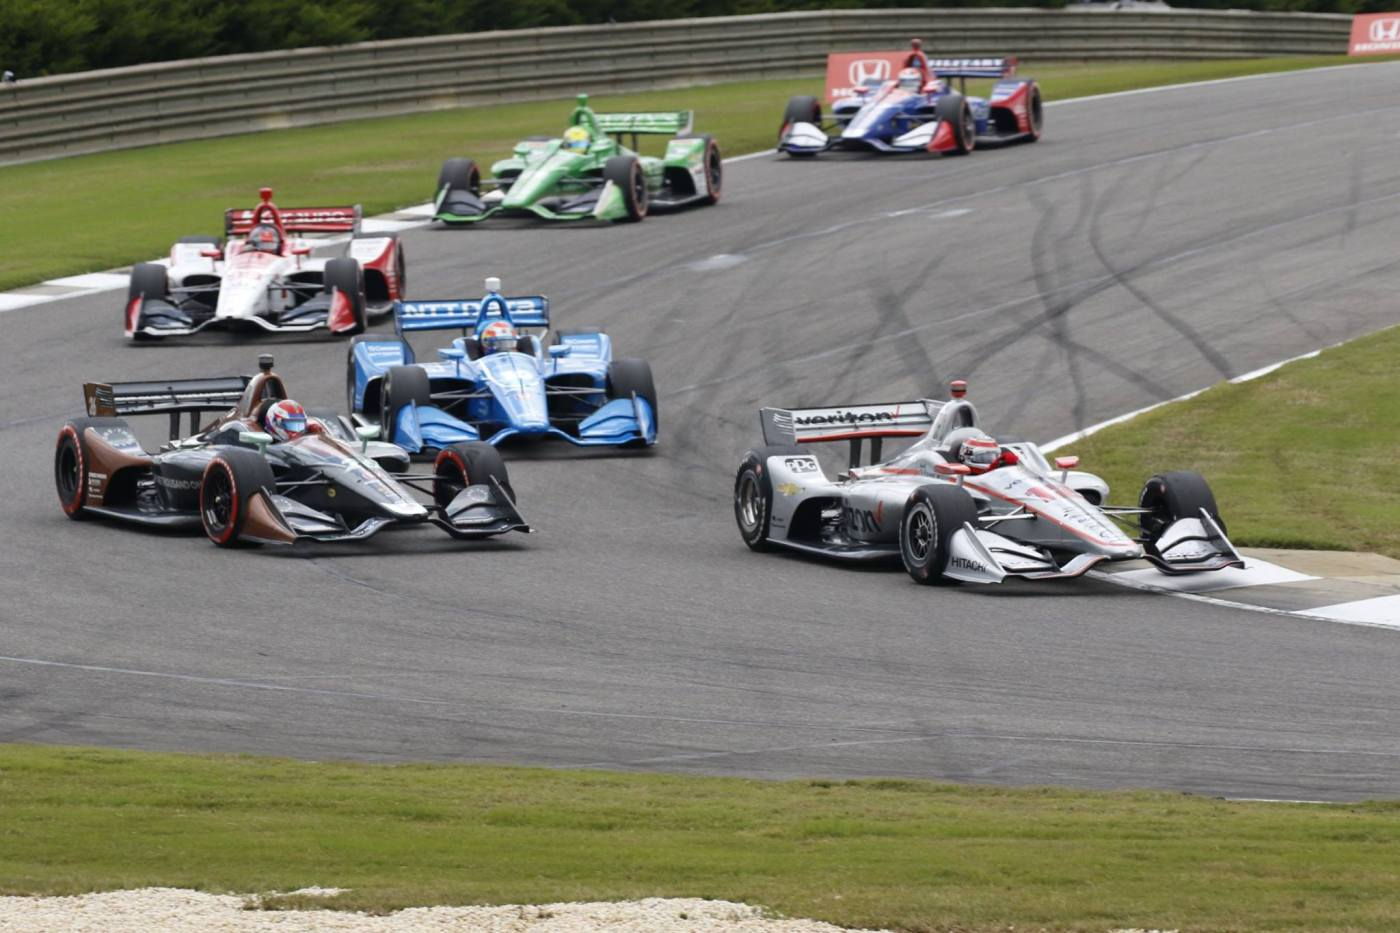 Big names such as two time Honda Indy Grand Prix of Alabama winner Josef Newgarden,  Helio Castroneves, Marco Andretti, Graham Rahal and Will Power will compete in the 2019 Indy Grand Prix of Alabama. (Photo submitted)